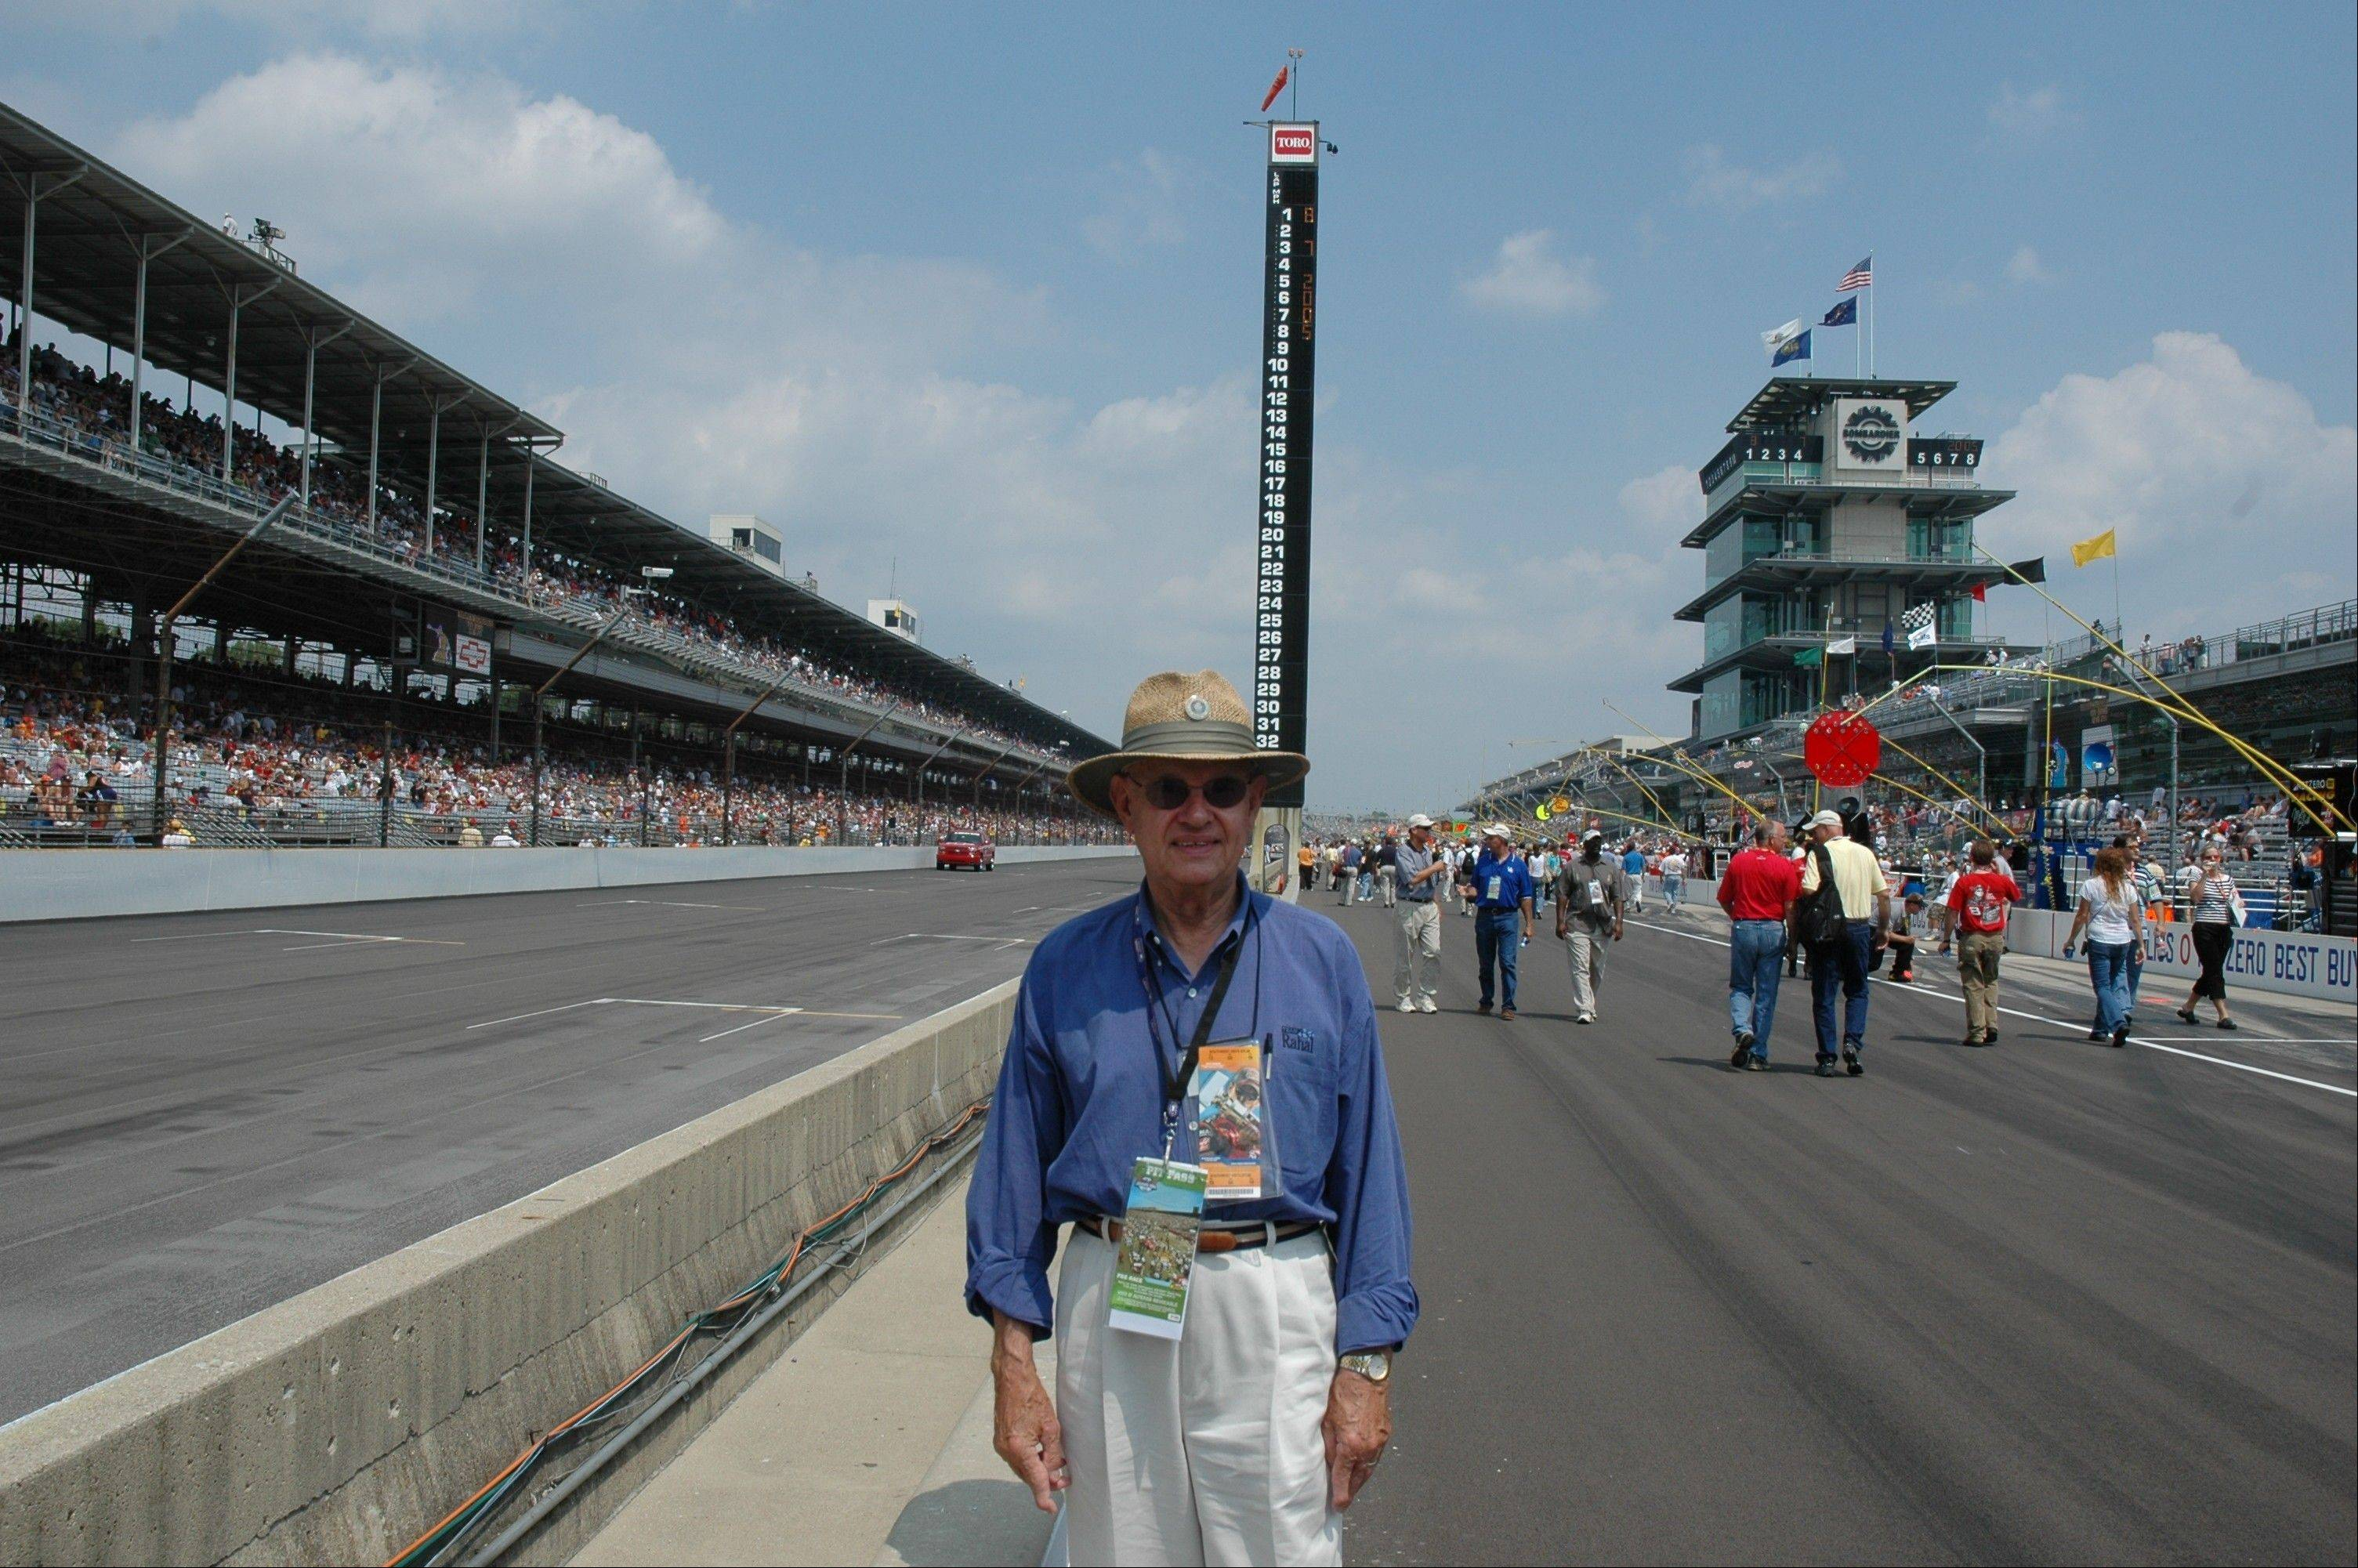 Standing in a pit lane next to the main straightaway, 82-year-old Marshall Schneider of West Dundee feels at home at the Indianapolis Motor Speedway. He went to his first Indy 500 race as an Elgin teen in 1949, when the winning speed was 121 mph. He plans to be at today's race with sons, Jerry and Ron, who have accompanied their dad to almost every Indy 500 for most of the past four decades.